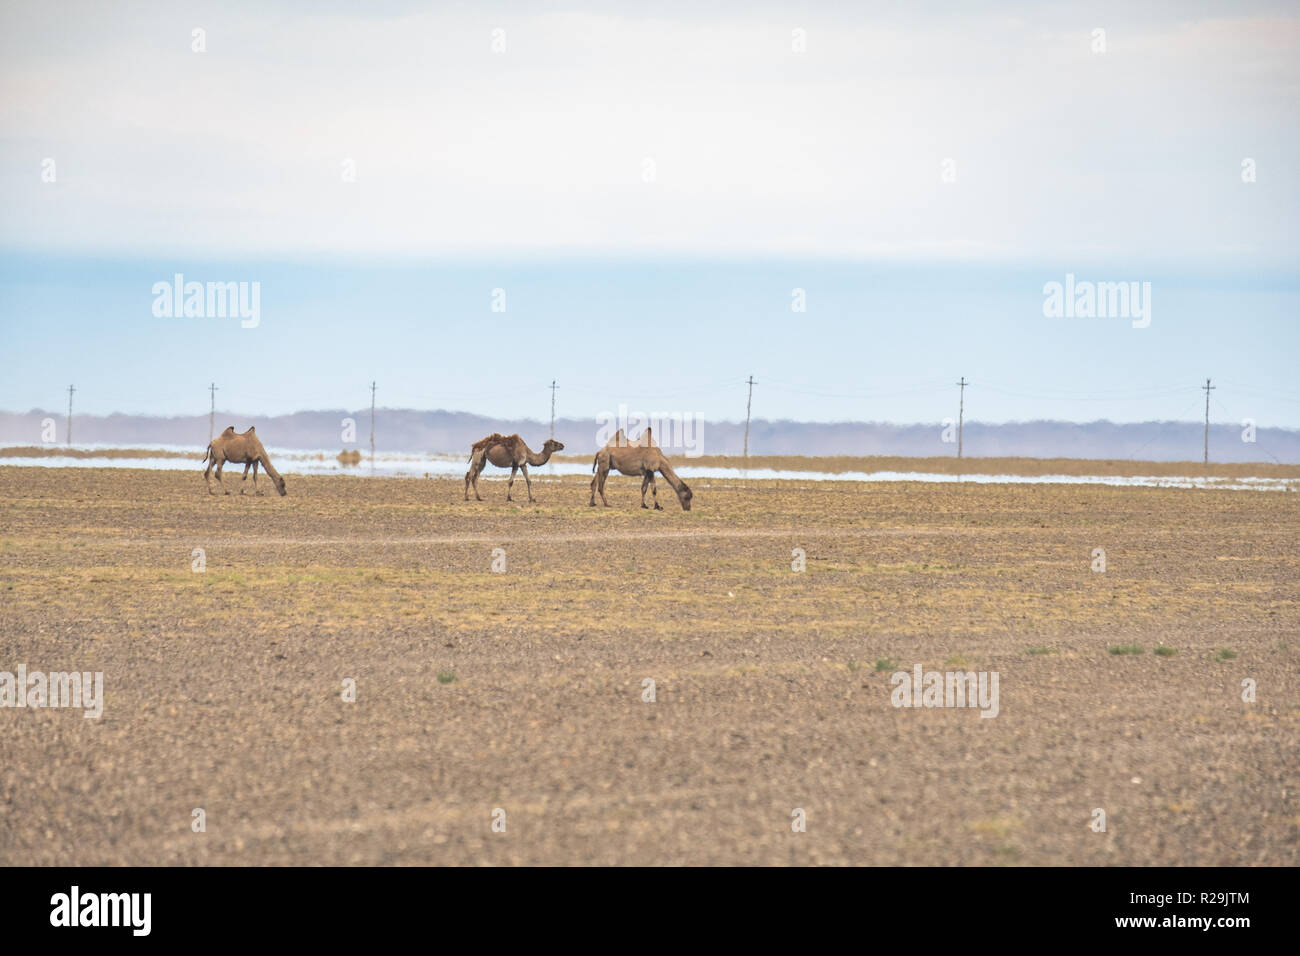 Bactrian camels grazing in the vast Gobi desert landscape with an inferior mirage in the background from the summer heat. - Stock Image